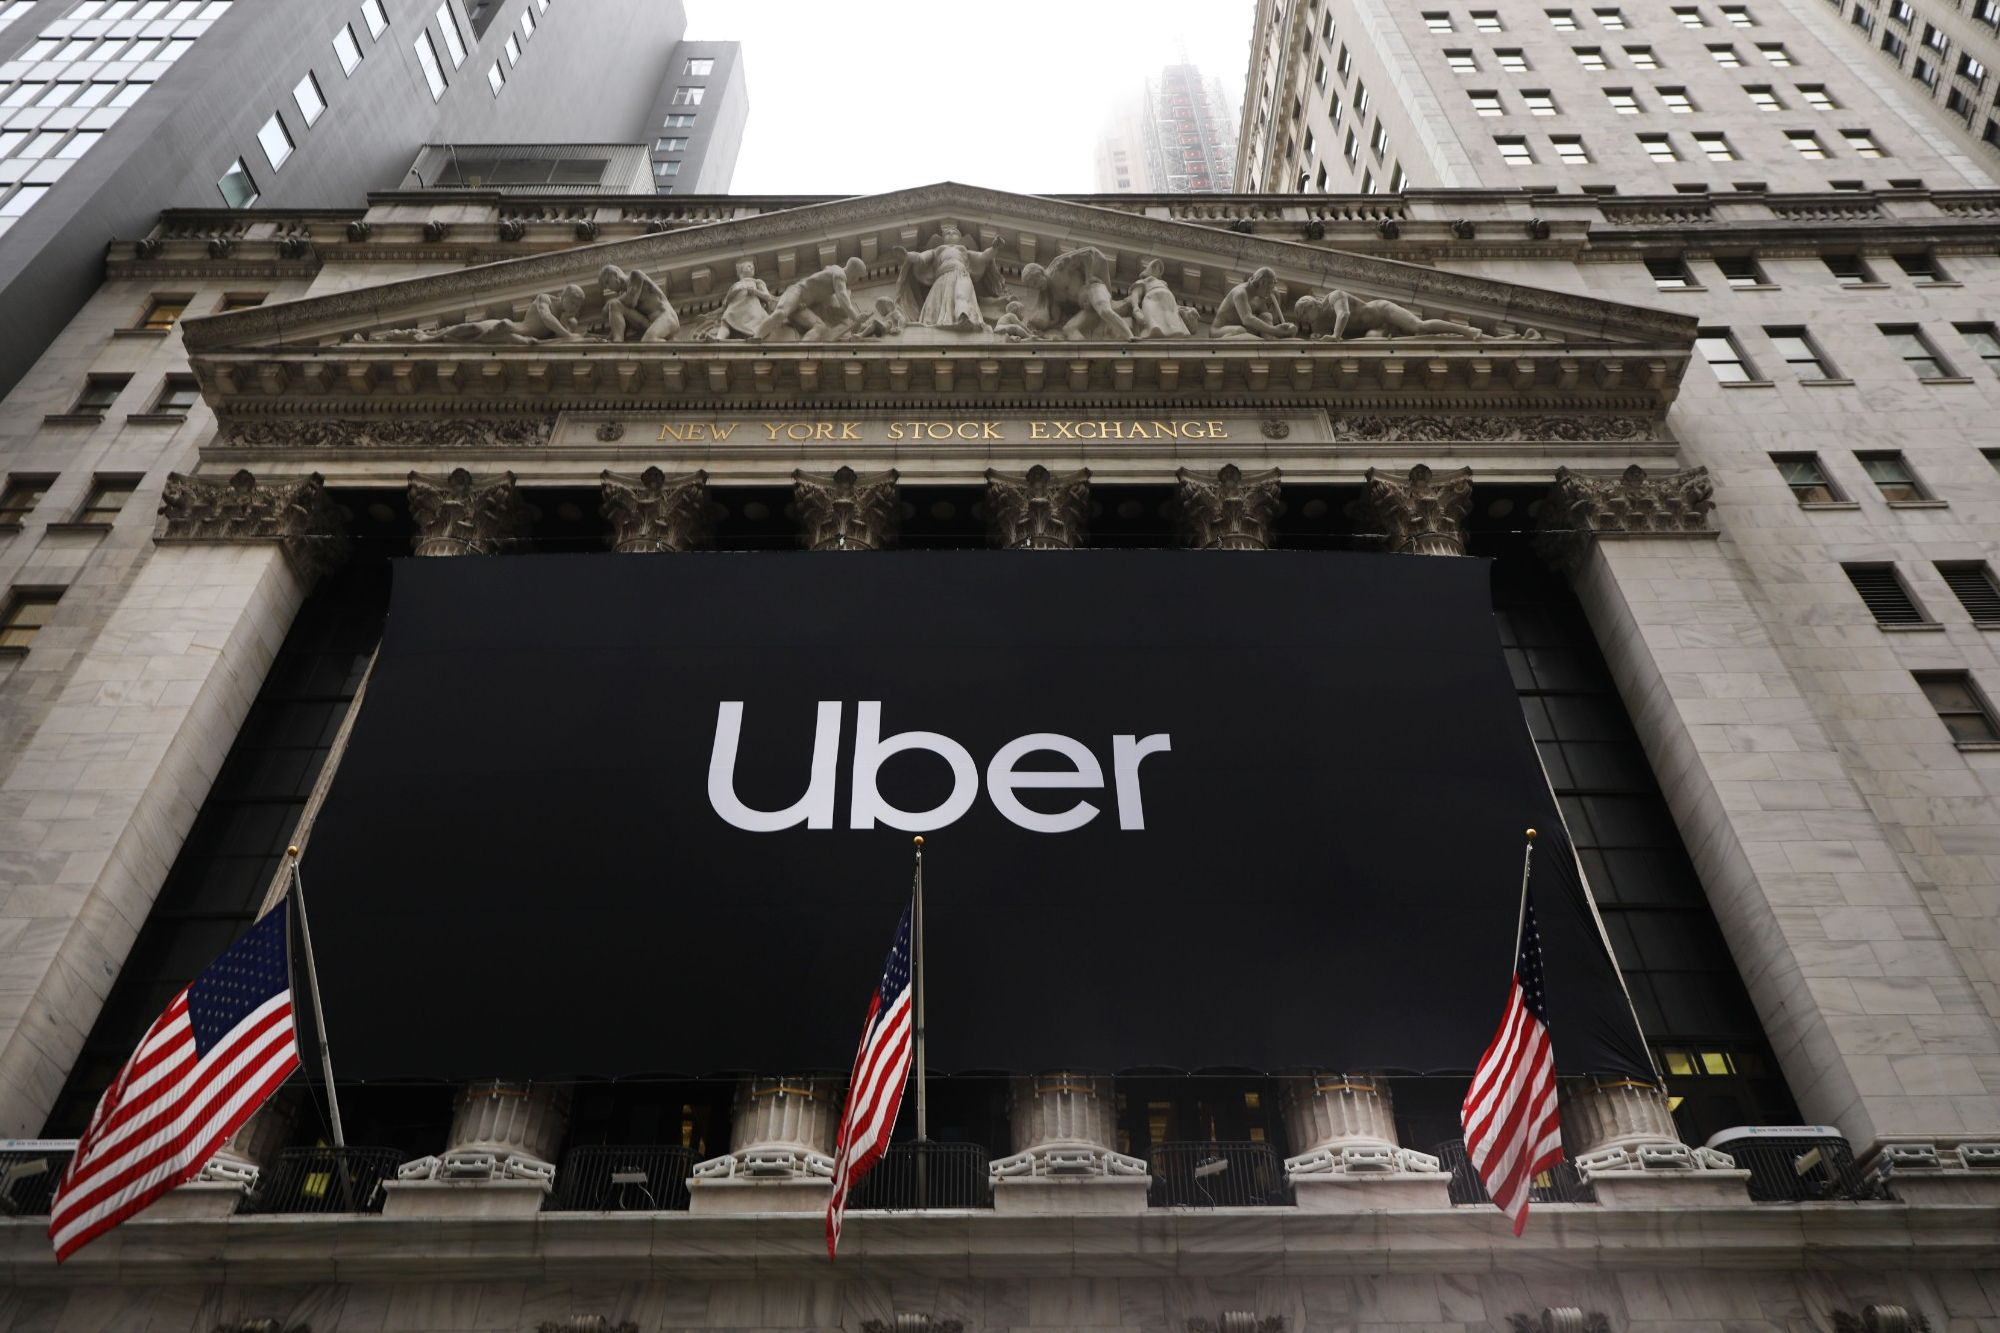 Uber Stock Tumbles After IPO, Leading to Disappointing First Day as Public Company